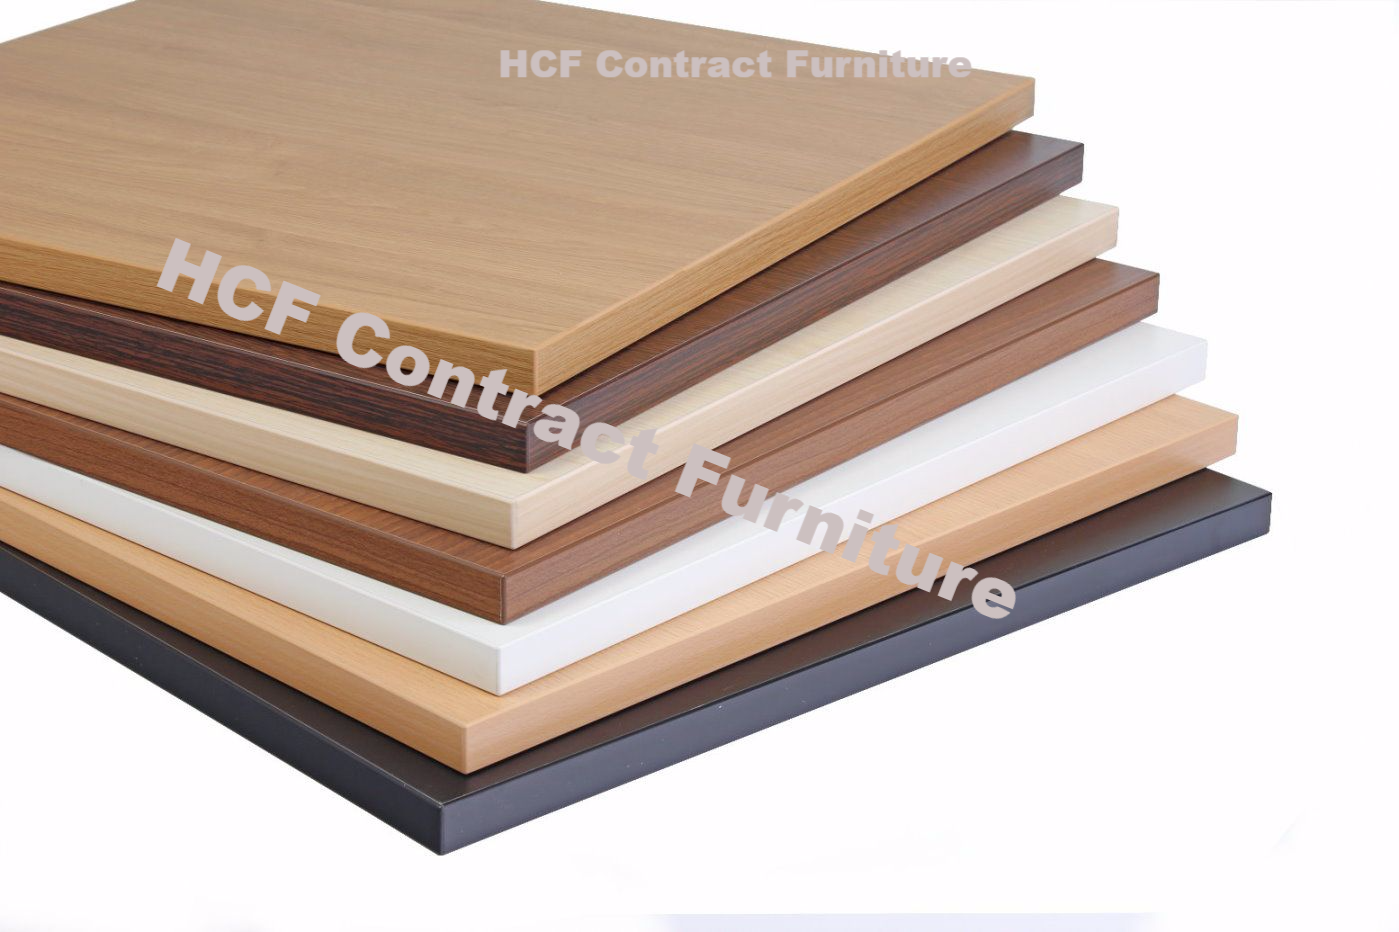 High Quality 600mm X 600mm Square 25mm Contract Laminate Table Top   MADE TO ORDER